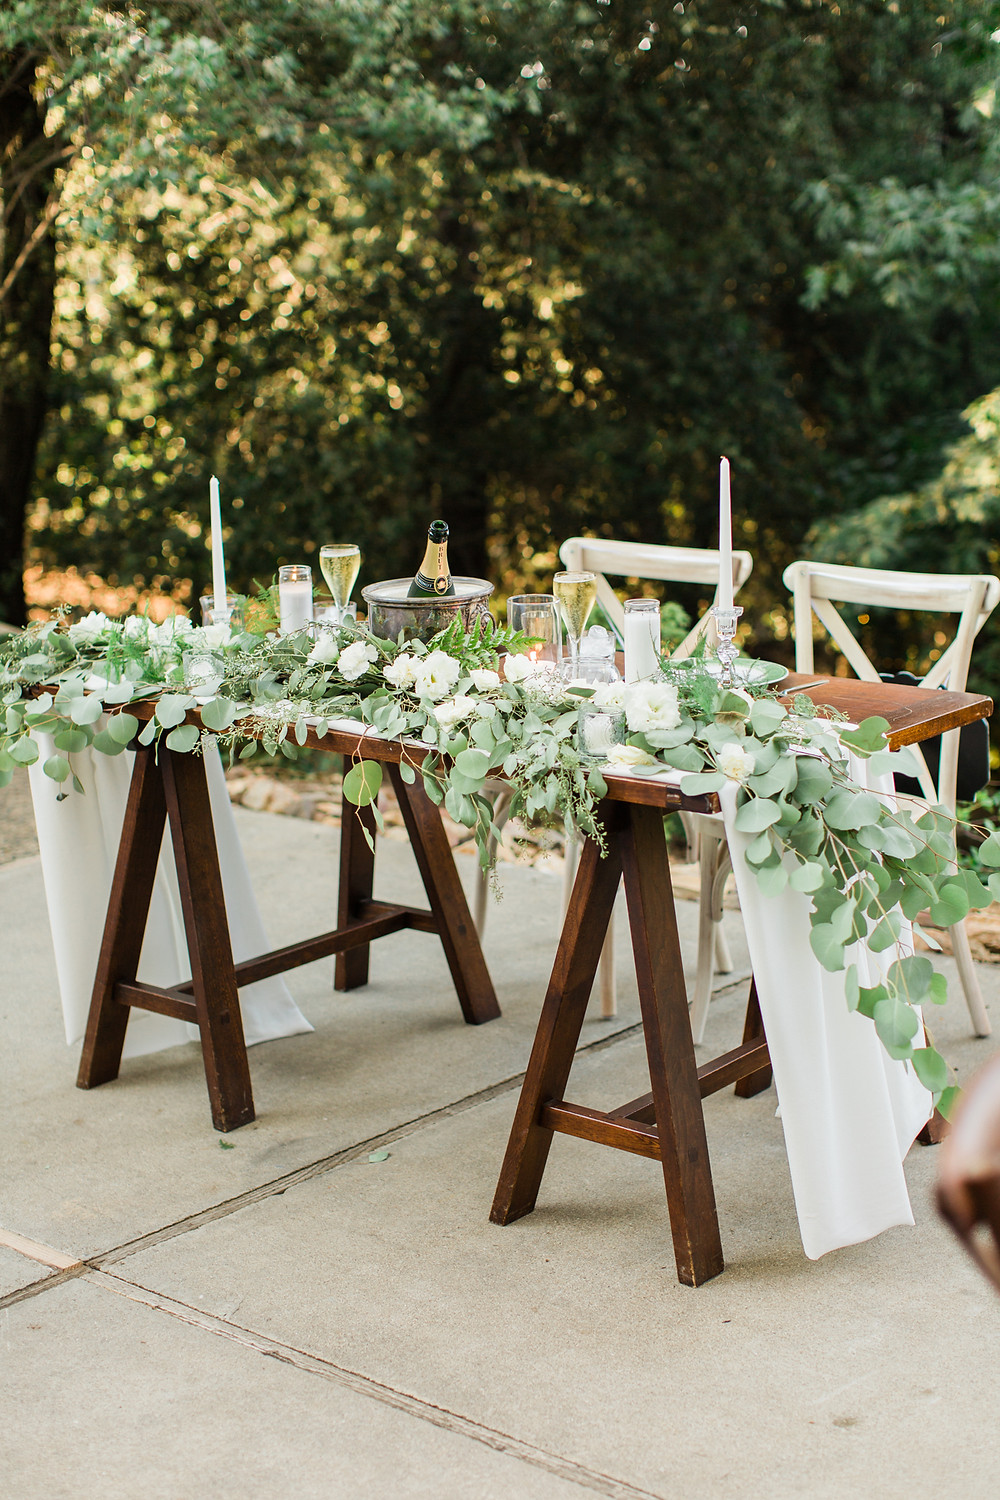 Sweetheart table with crystal candlesticks and dripping greenery.